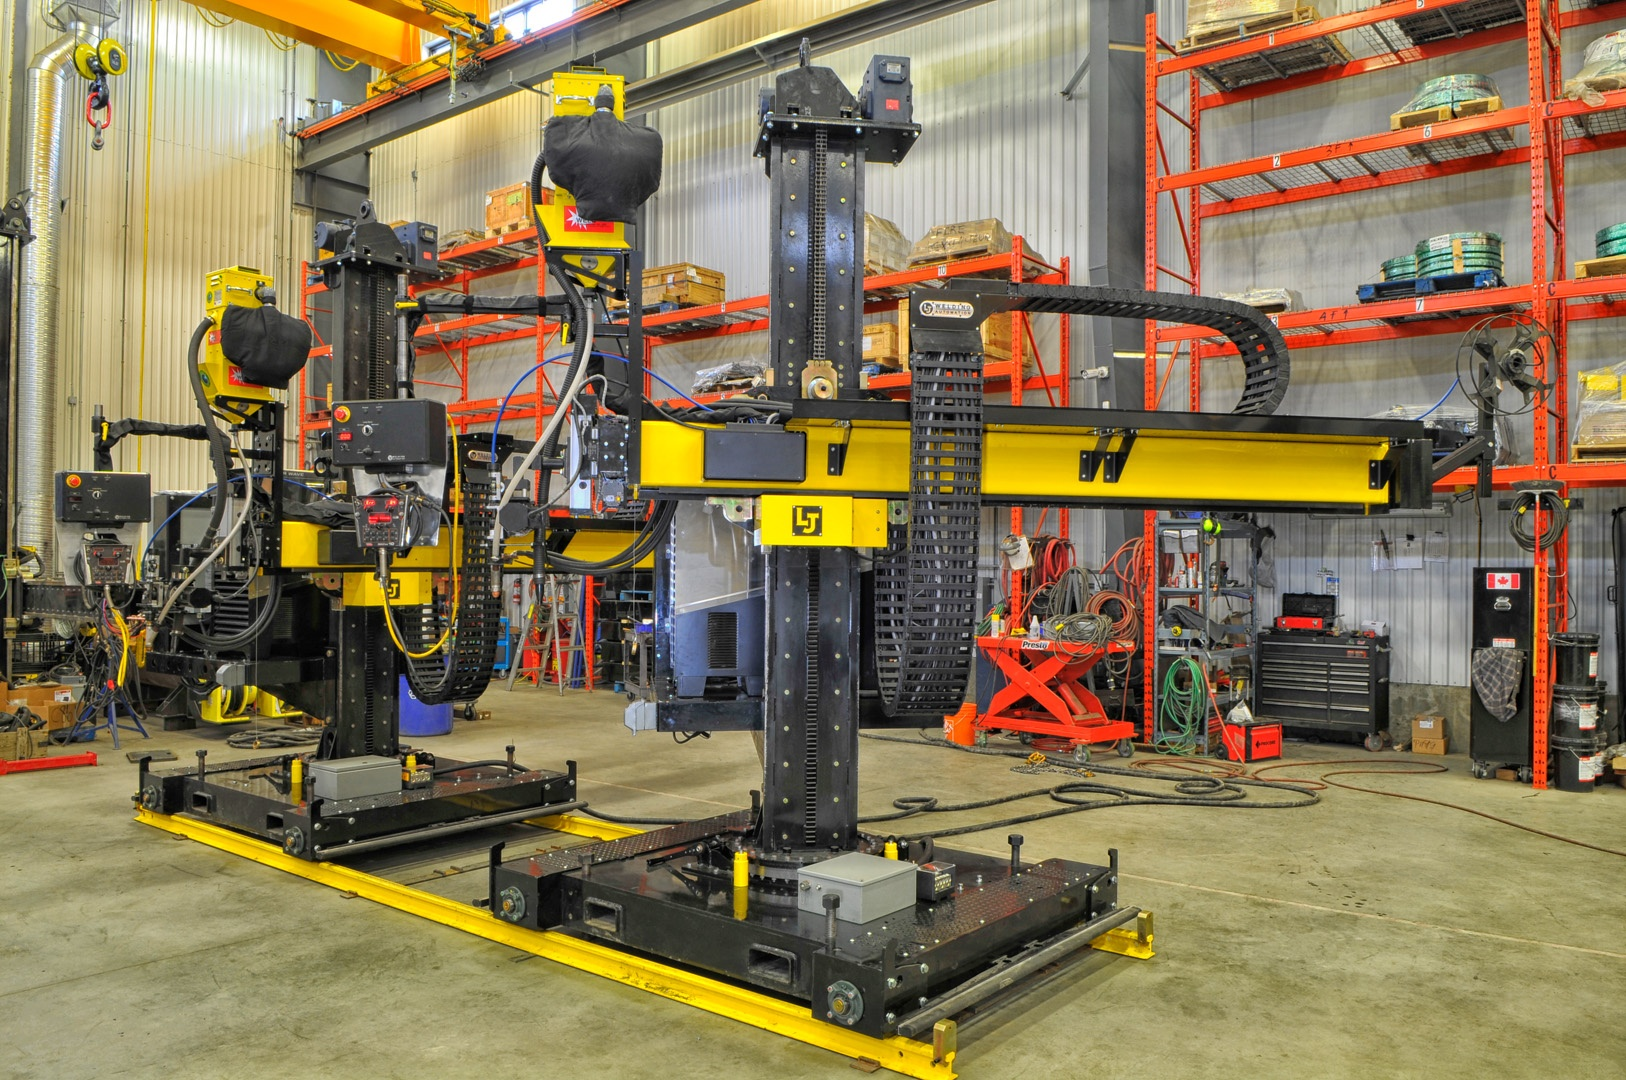 miller electric welding manipulator for sale or rent